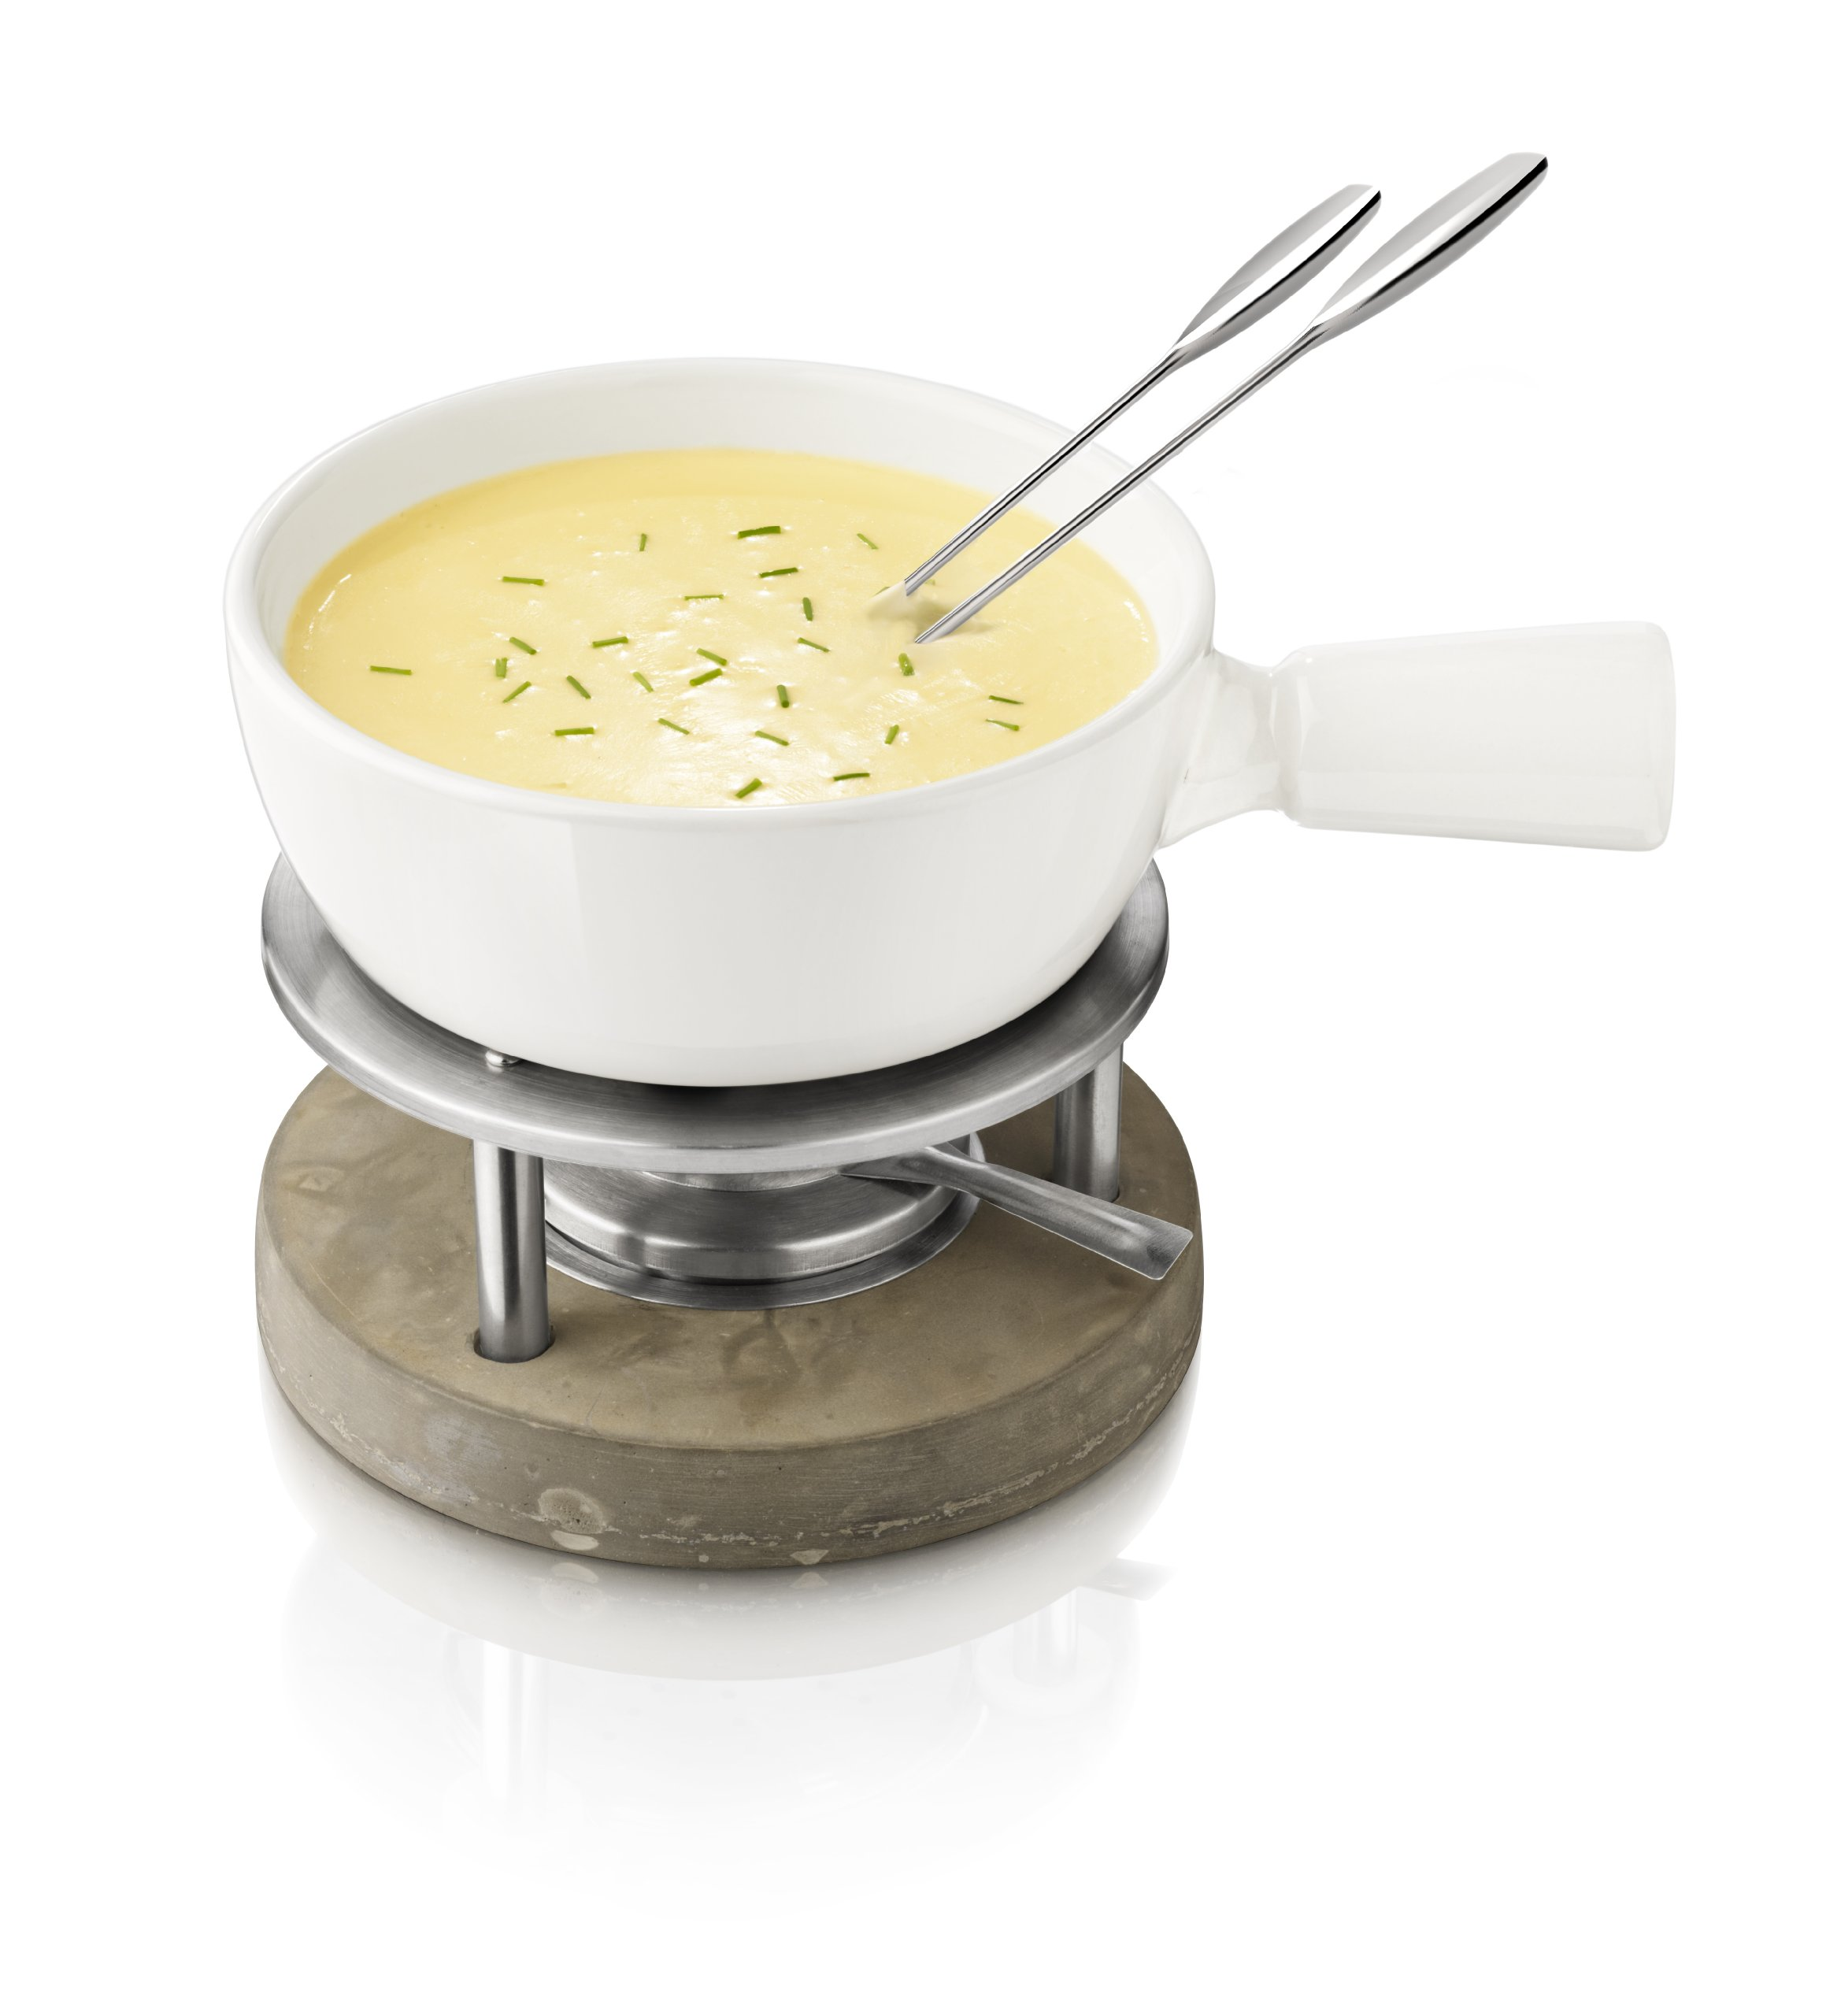 Boska Holland 340001 Concrete White Fondue Pot 1 Liter